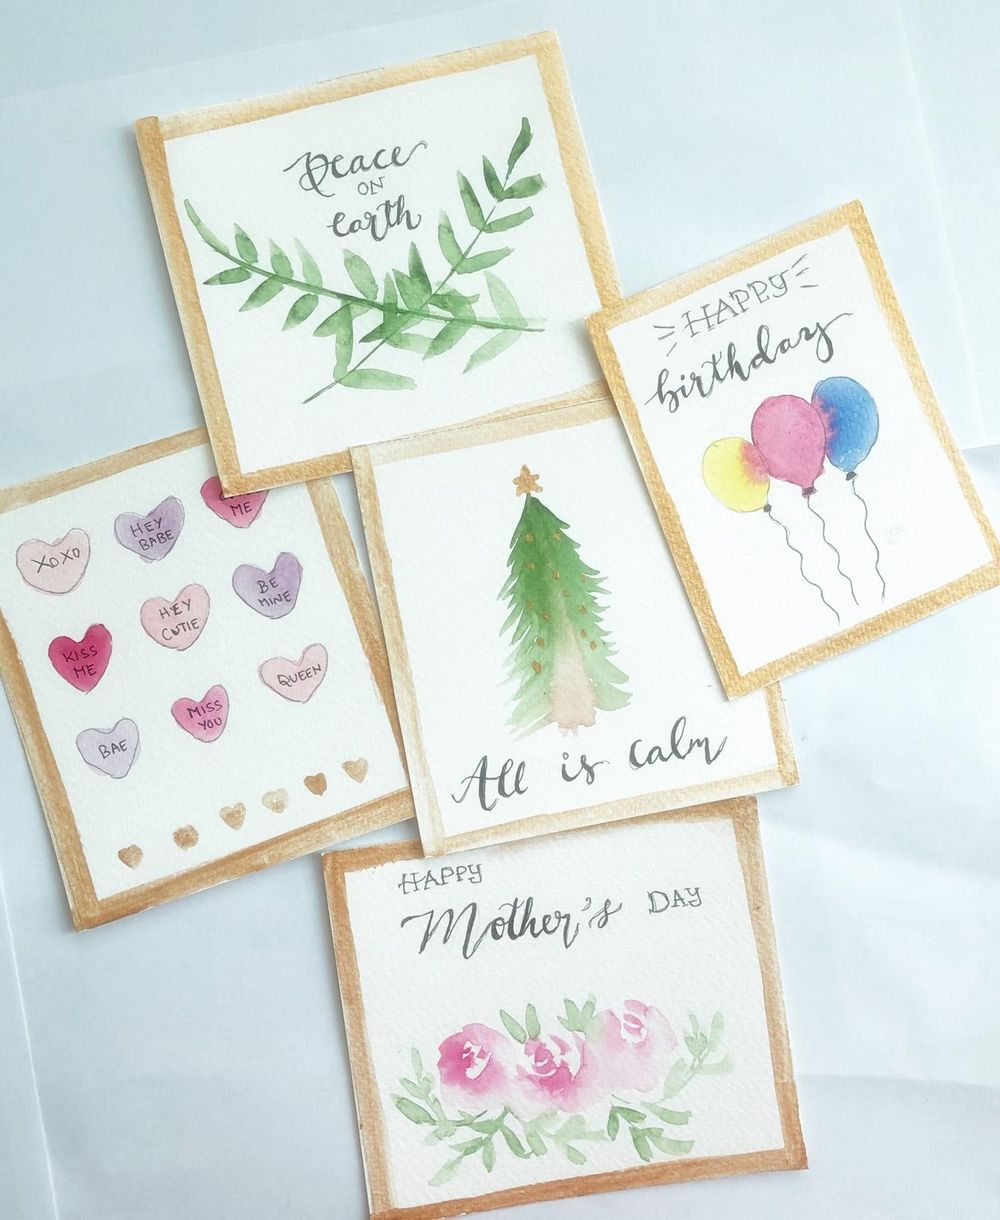 Handmade cards - image 1 - student project